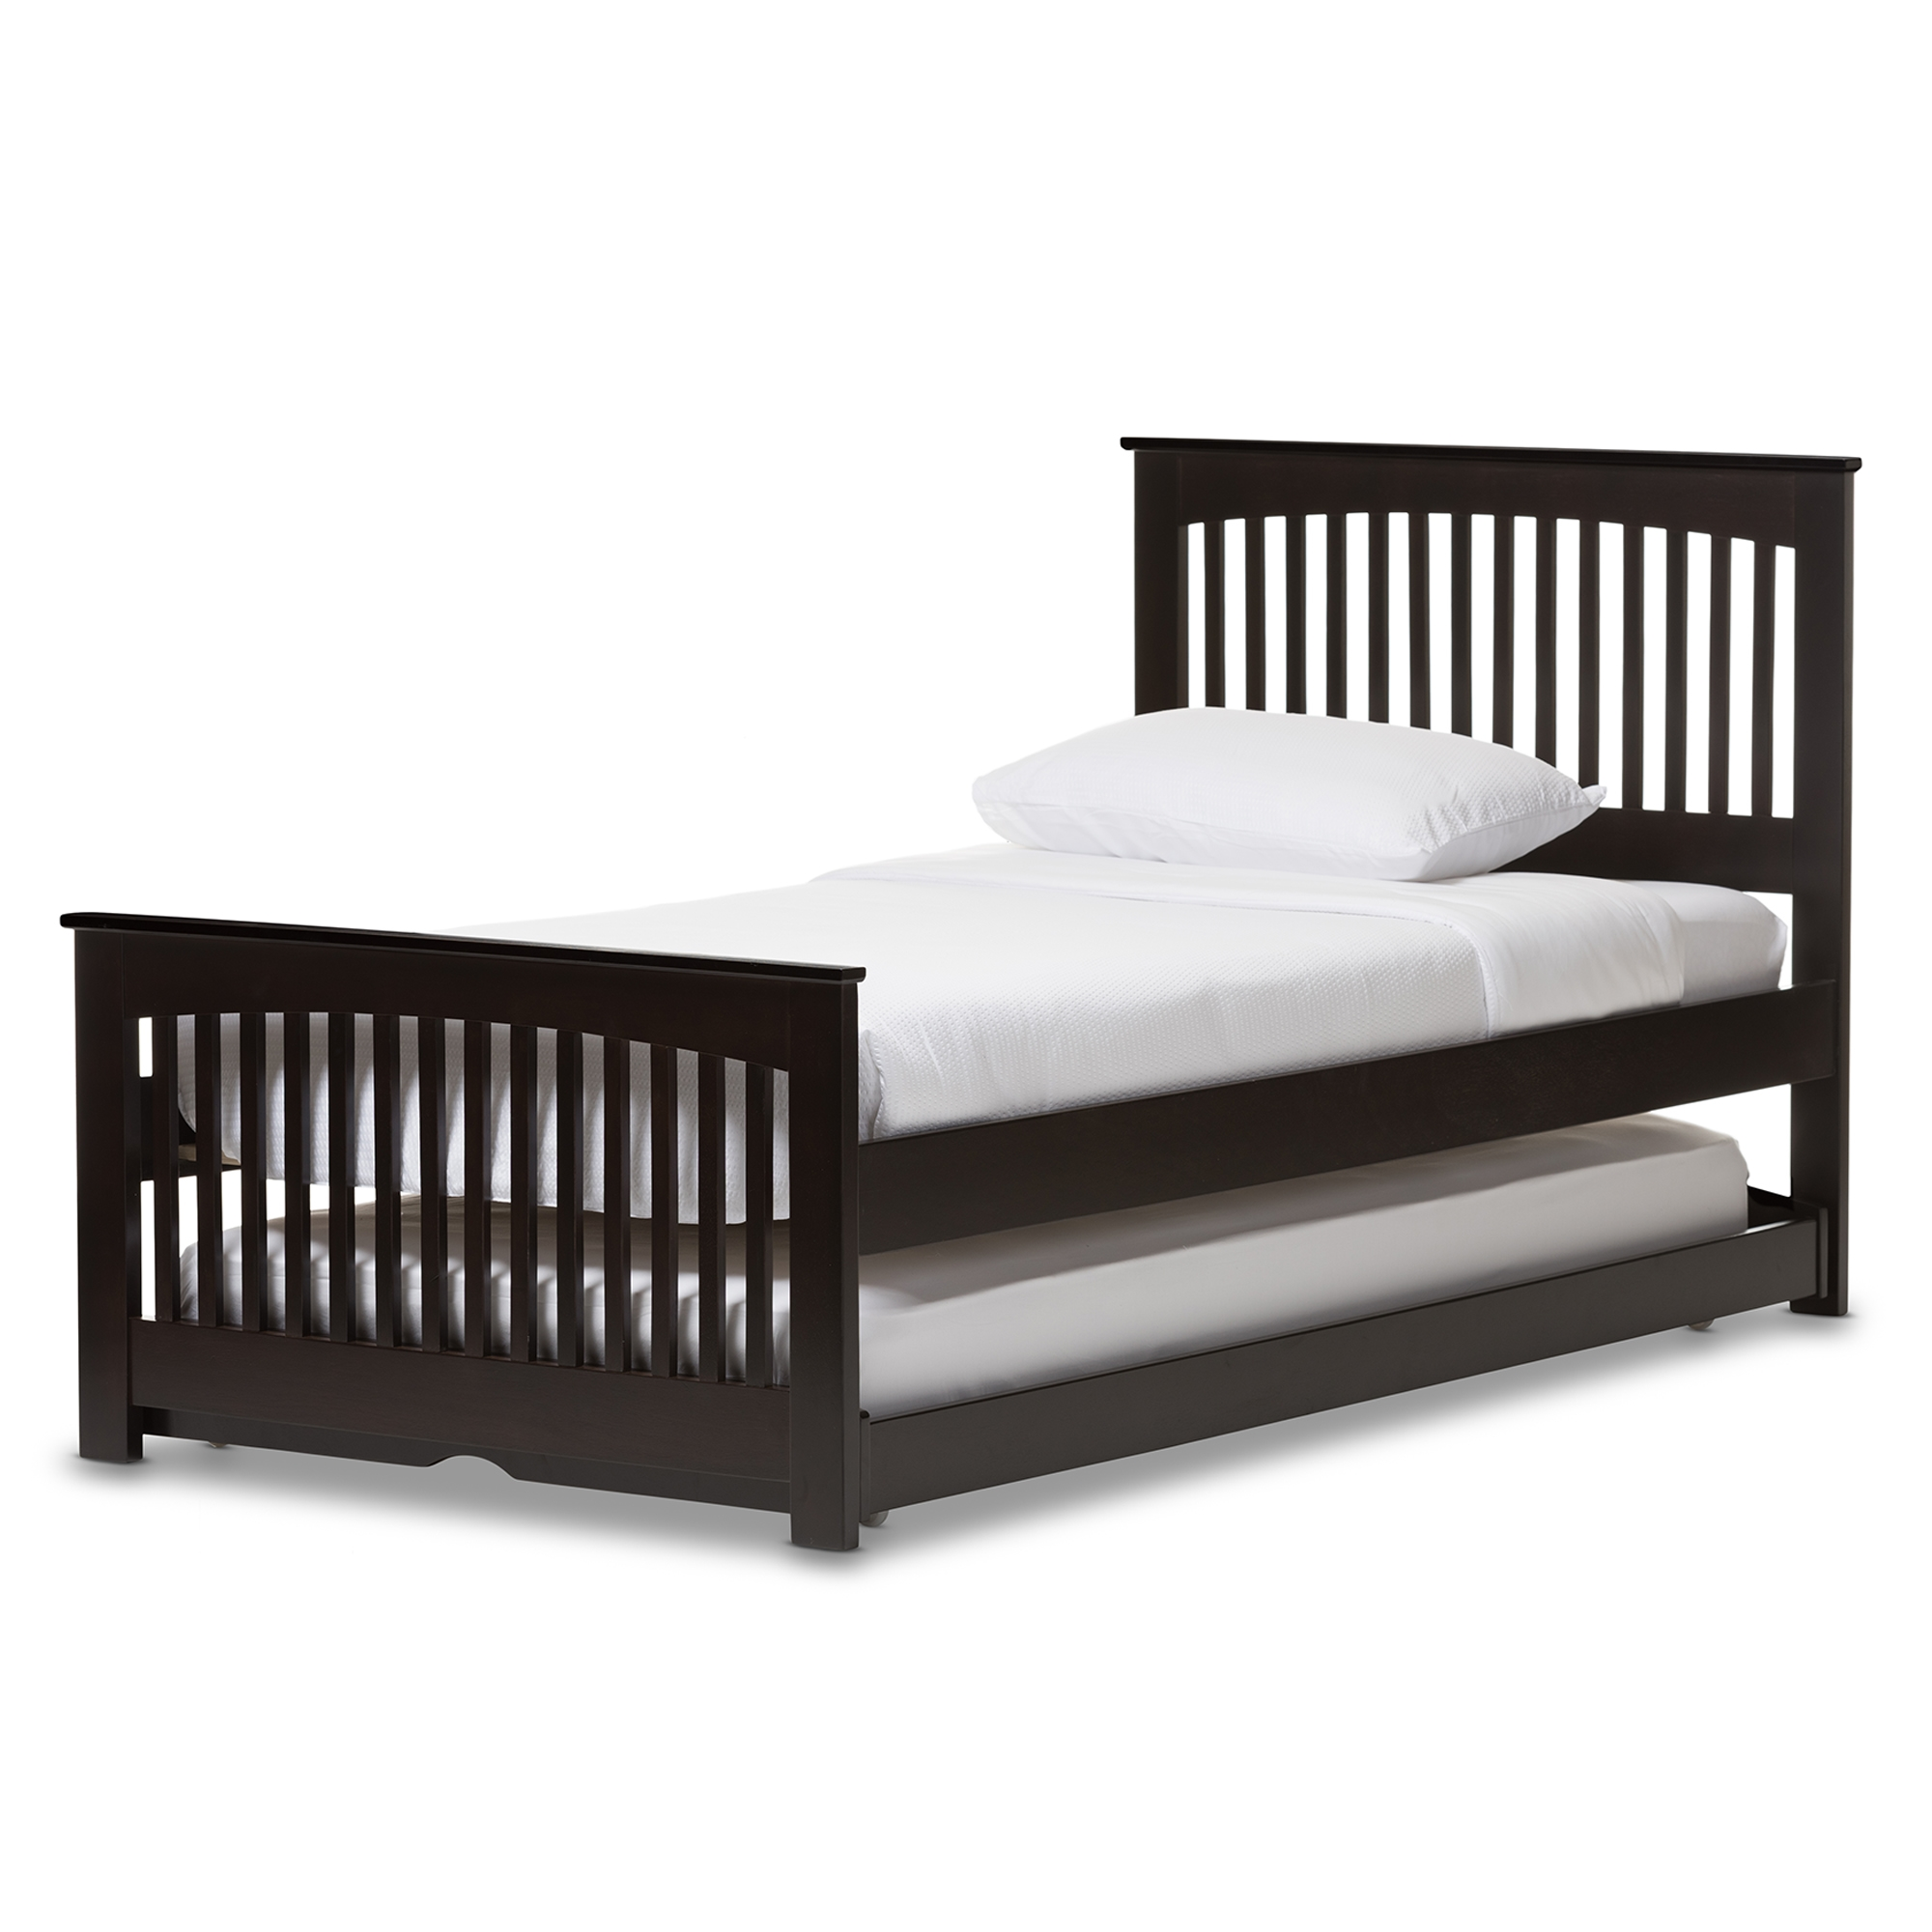 baxton studio wholesale twin size beds wholesale bedroom furniture wholesale furniture